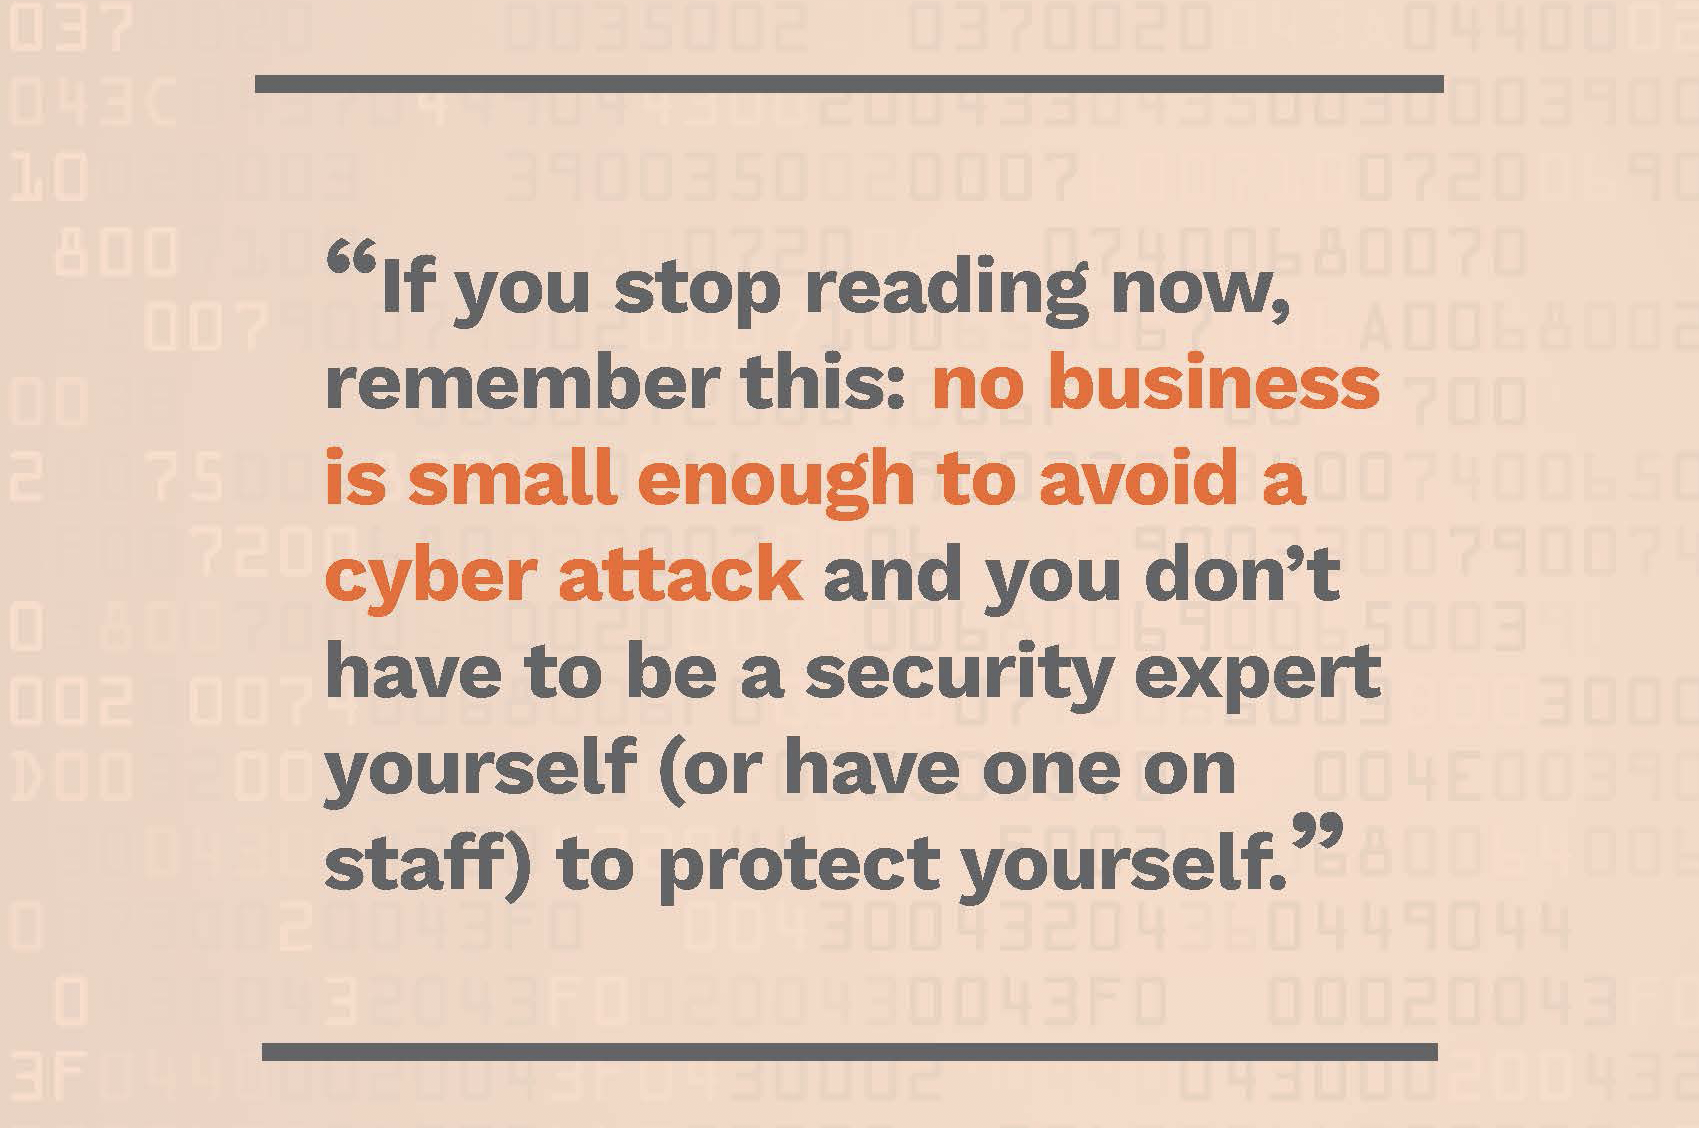 No business is small enough to avoid a cyber attack